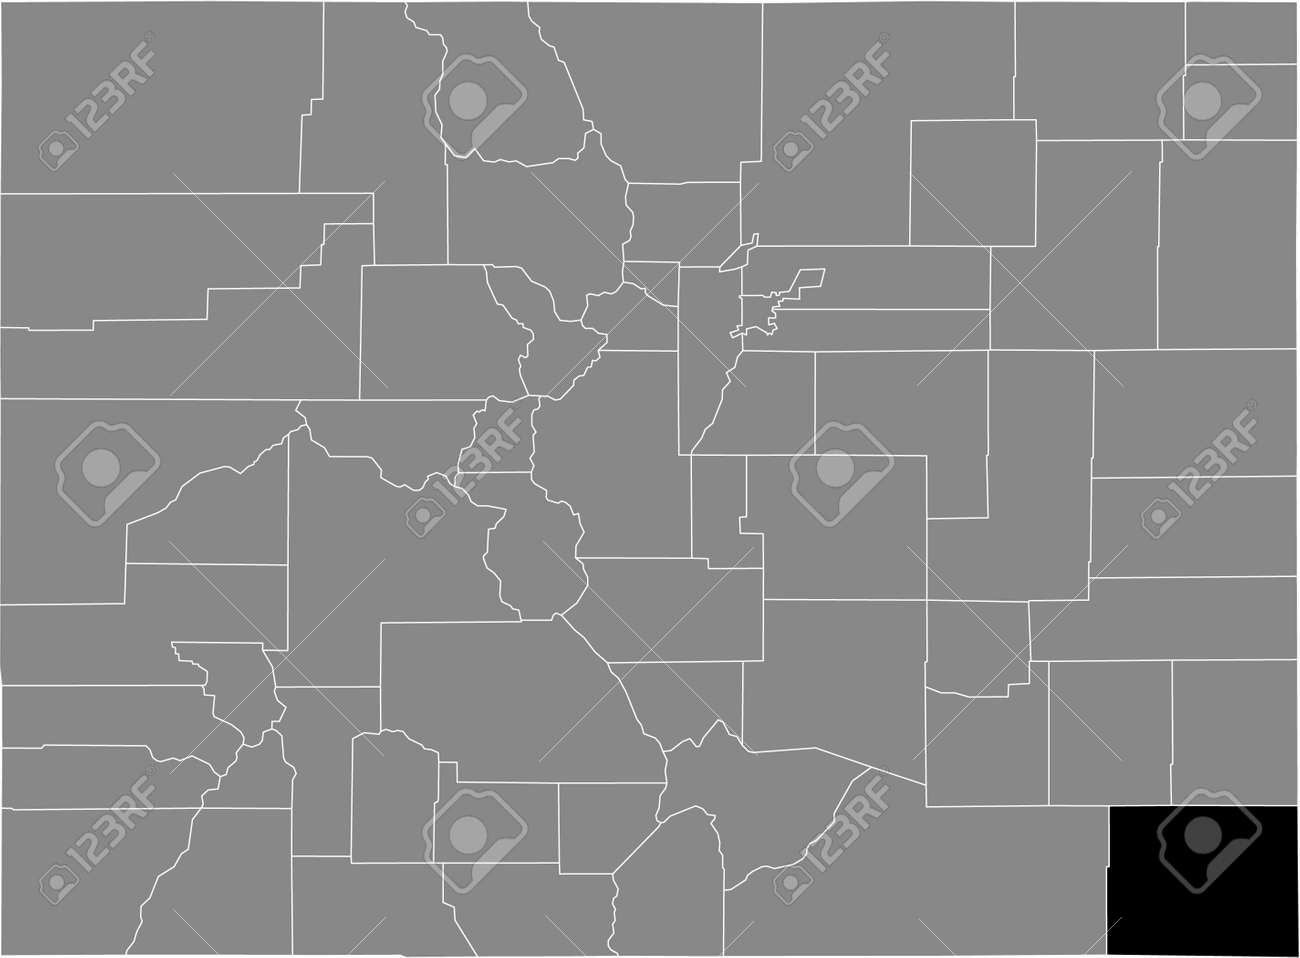 Black highlighted location map of the US Baca county inside gray map of the Federal State of Colorado, USA - 169913164